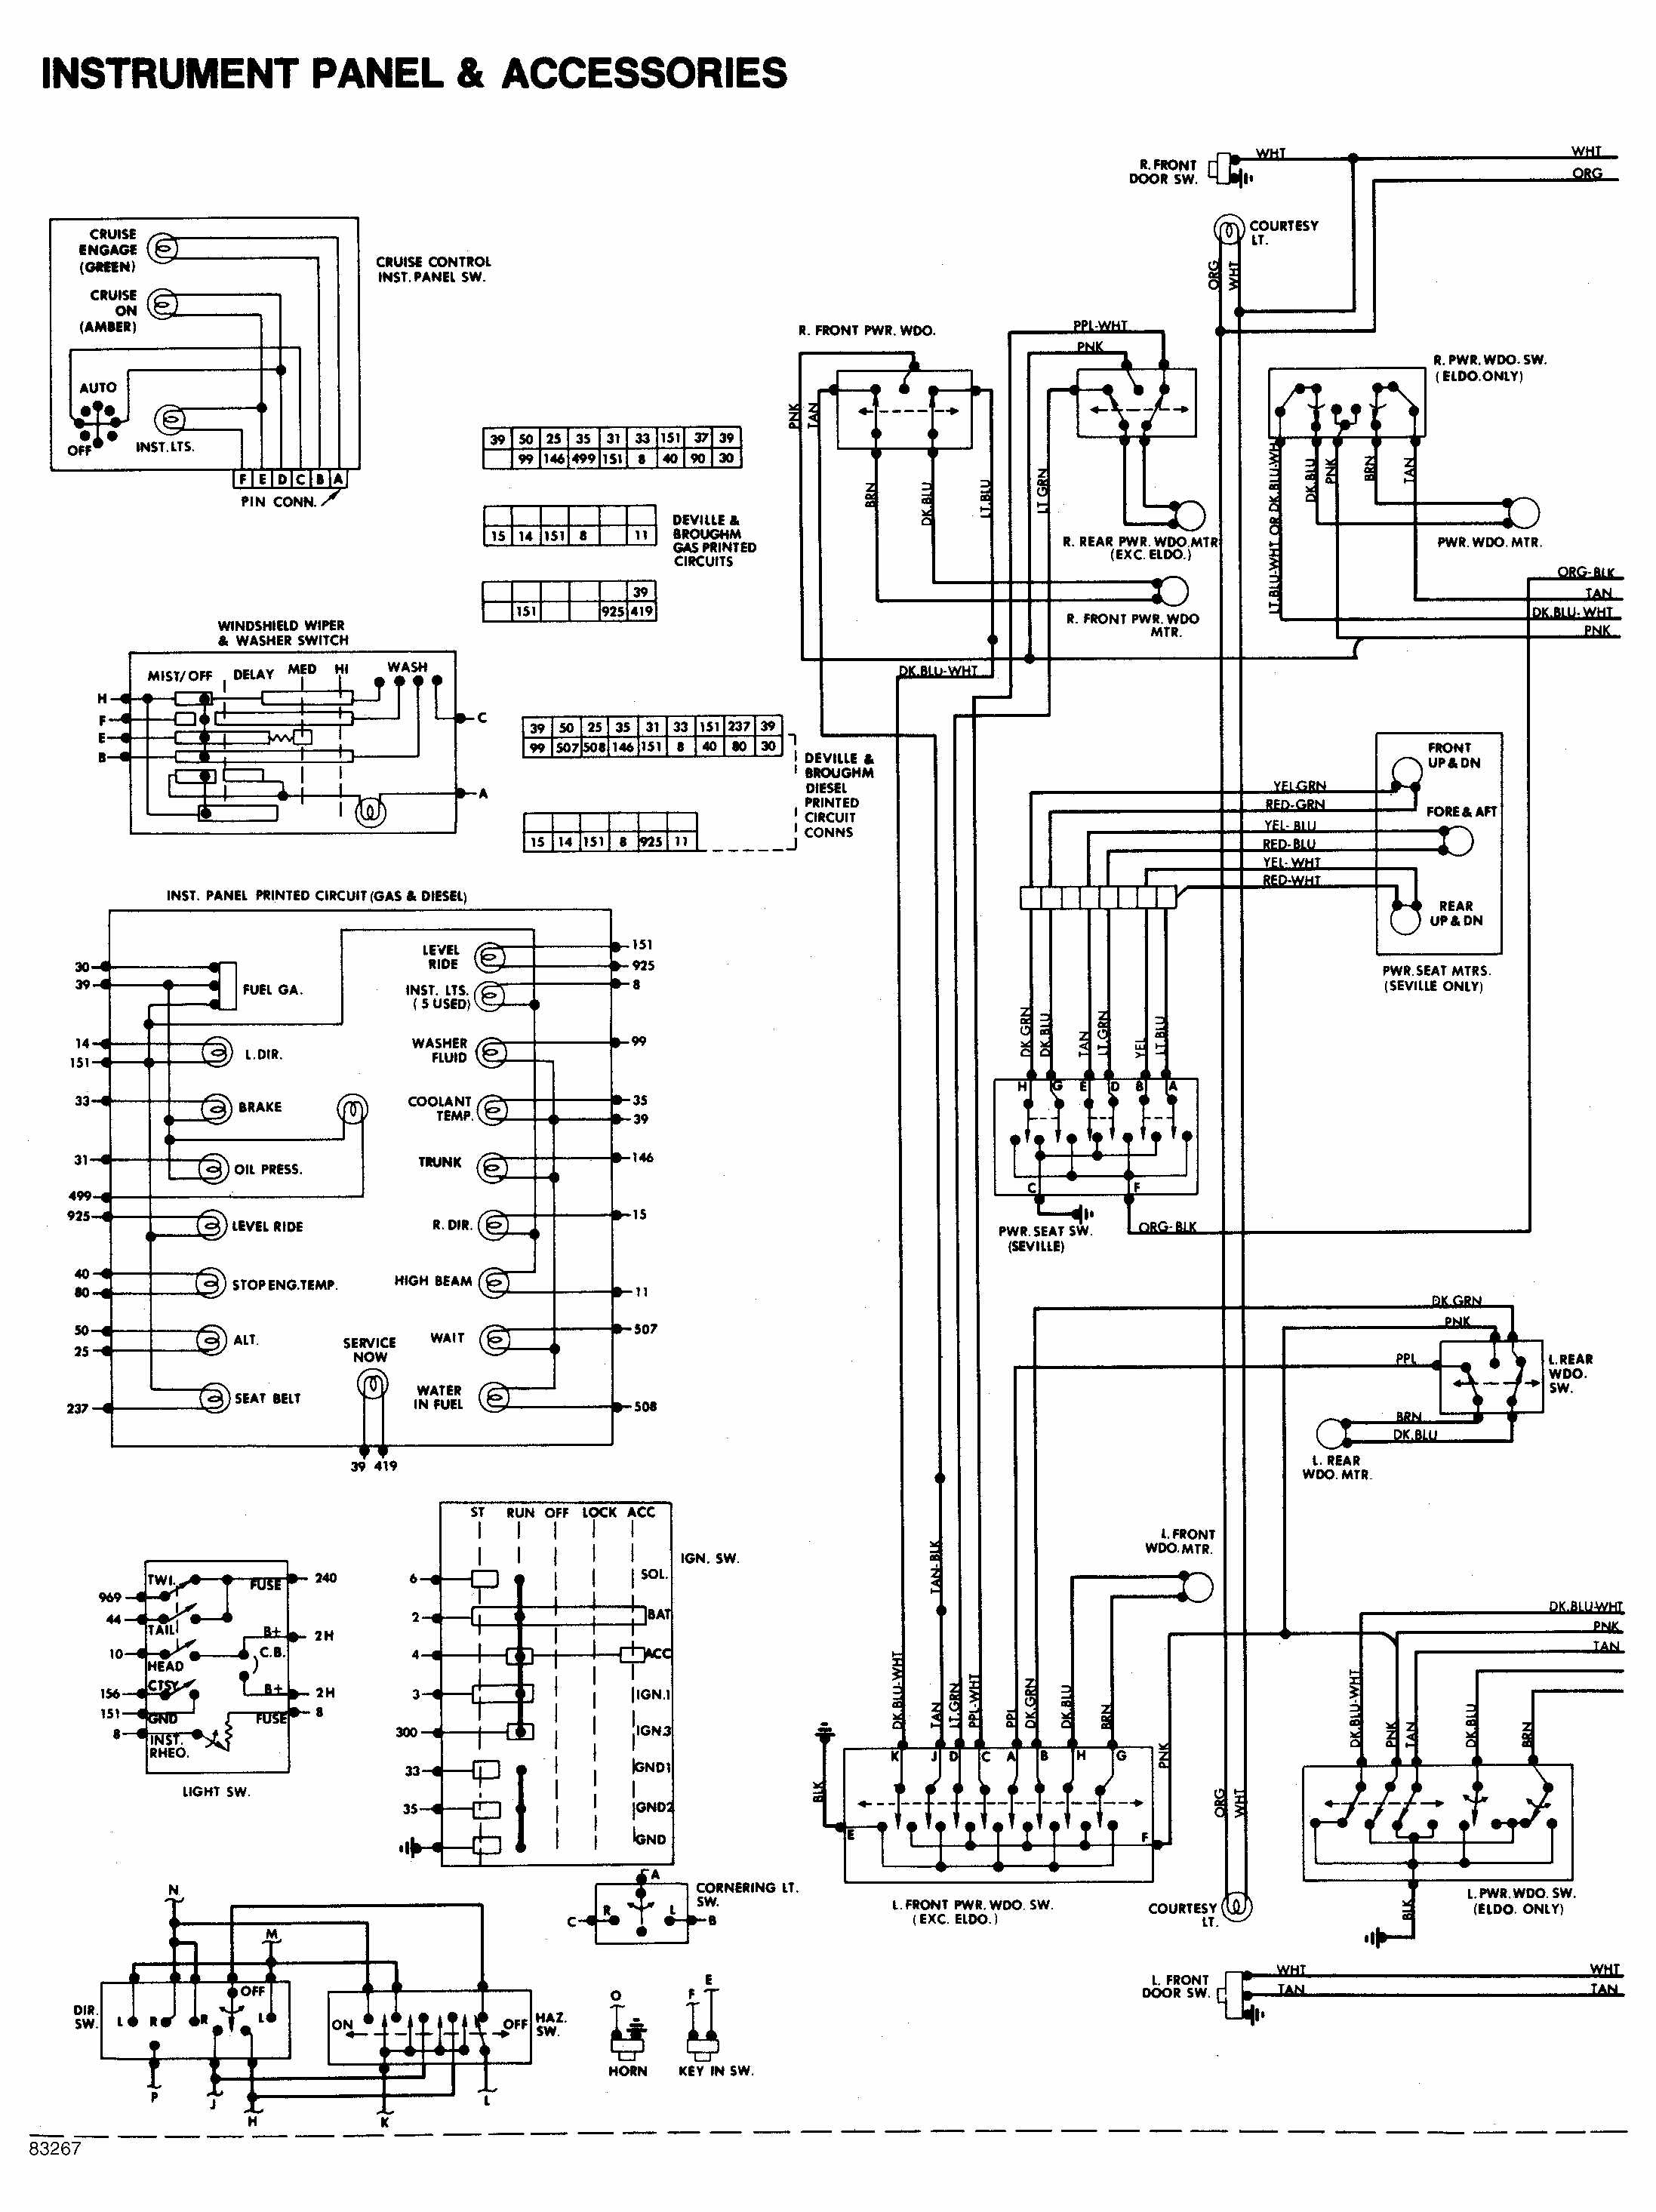 instrument panel and accessories wiring diagram of 1984 cadillac deville is a wiring schematic along with 1948 cadillac ignition wiring